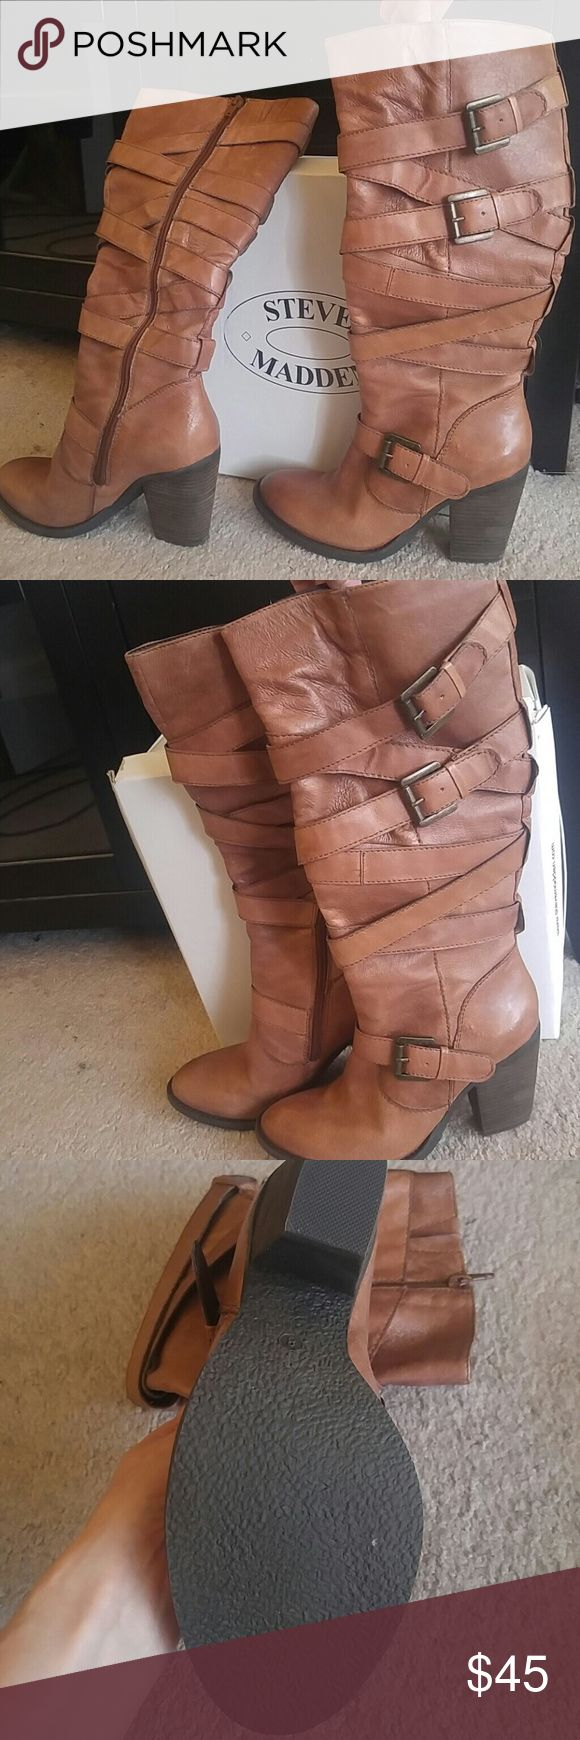 Brand New Strappy knee high boots Dark camel Strappy knee high Steve Madden boots. Super cute for fall. Never worn, perfect condition! Steve Madden Shoes Heeled Boots